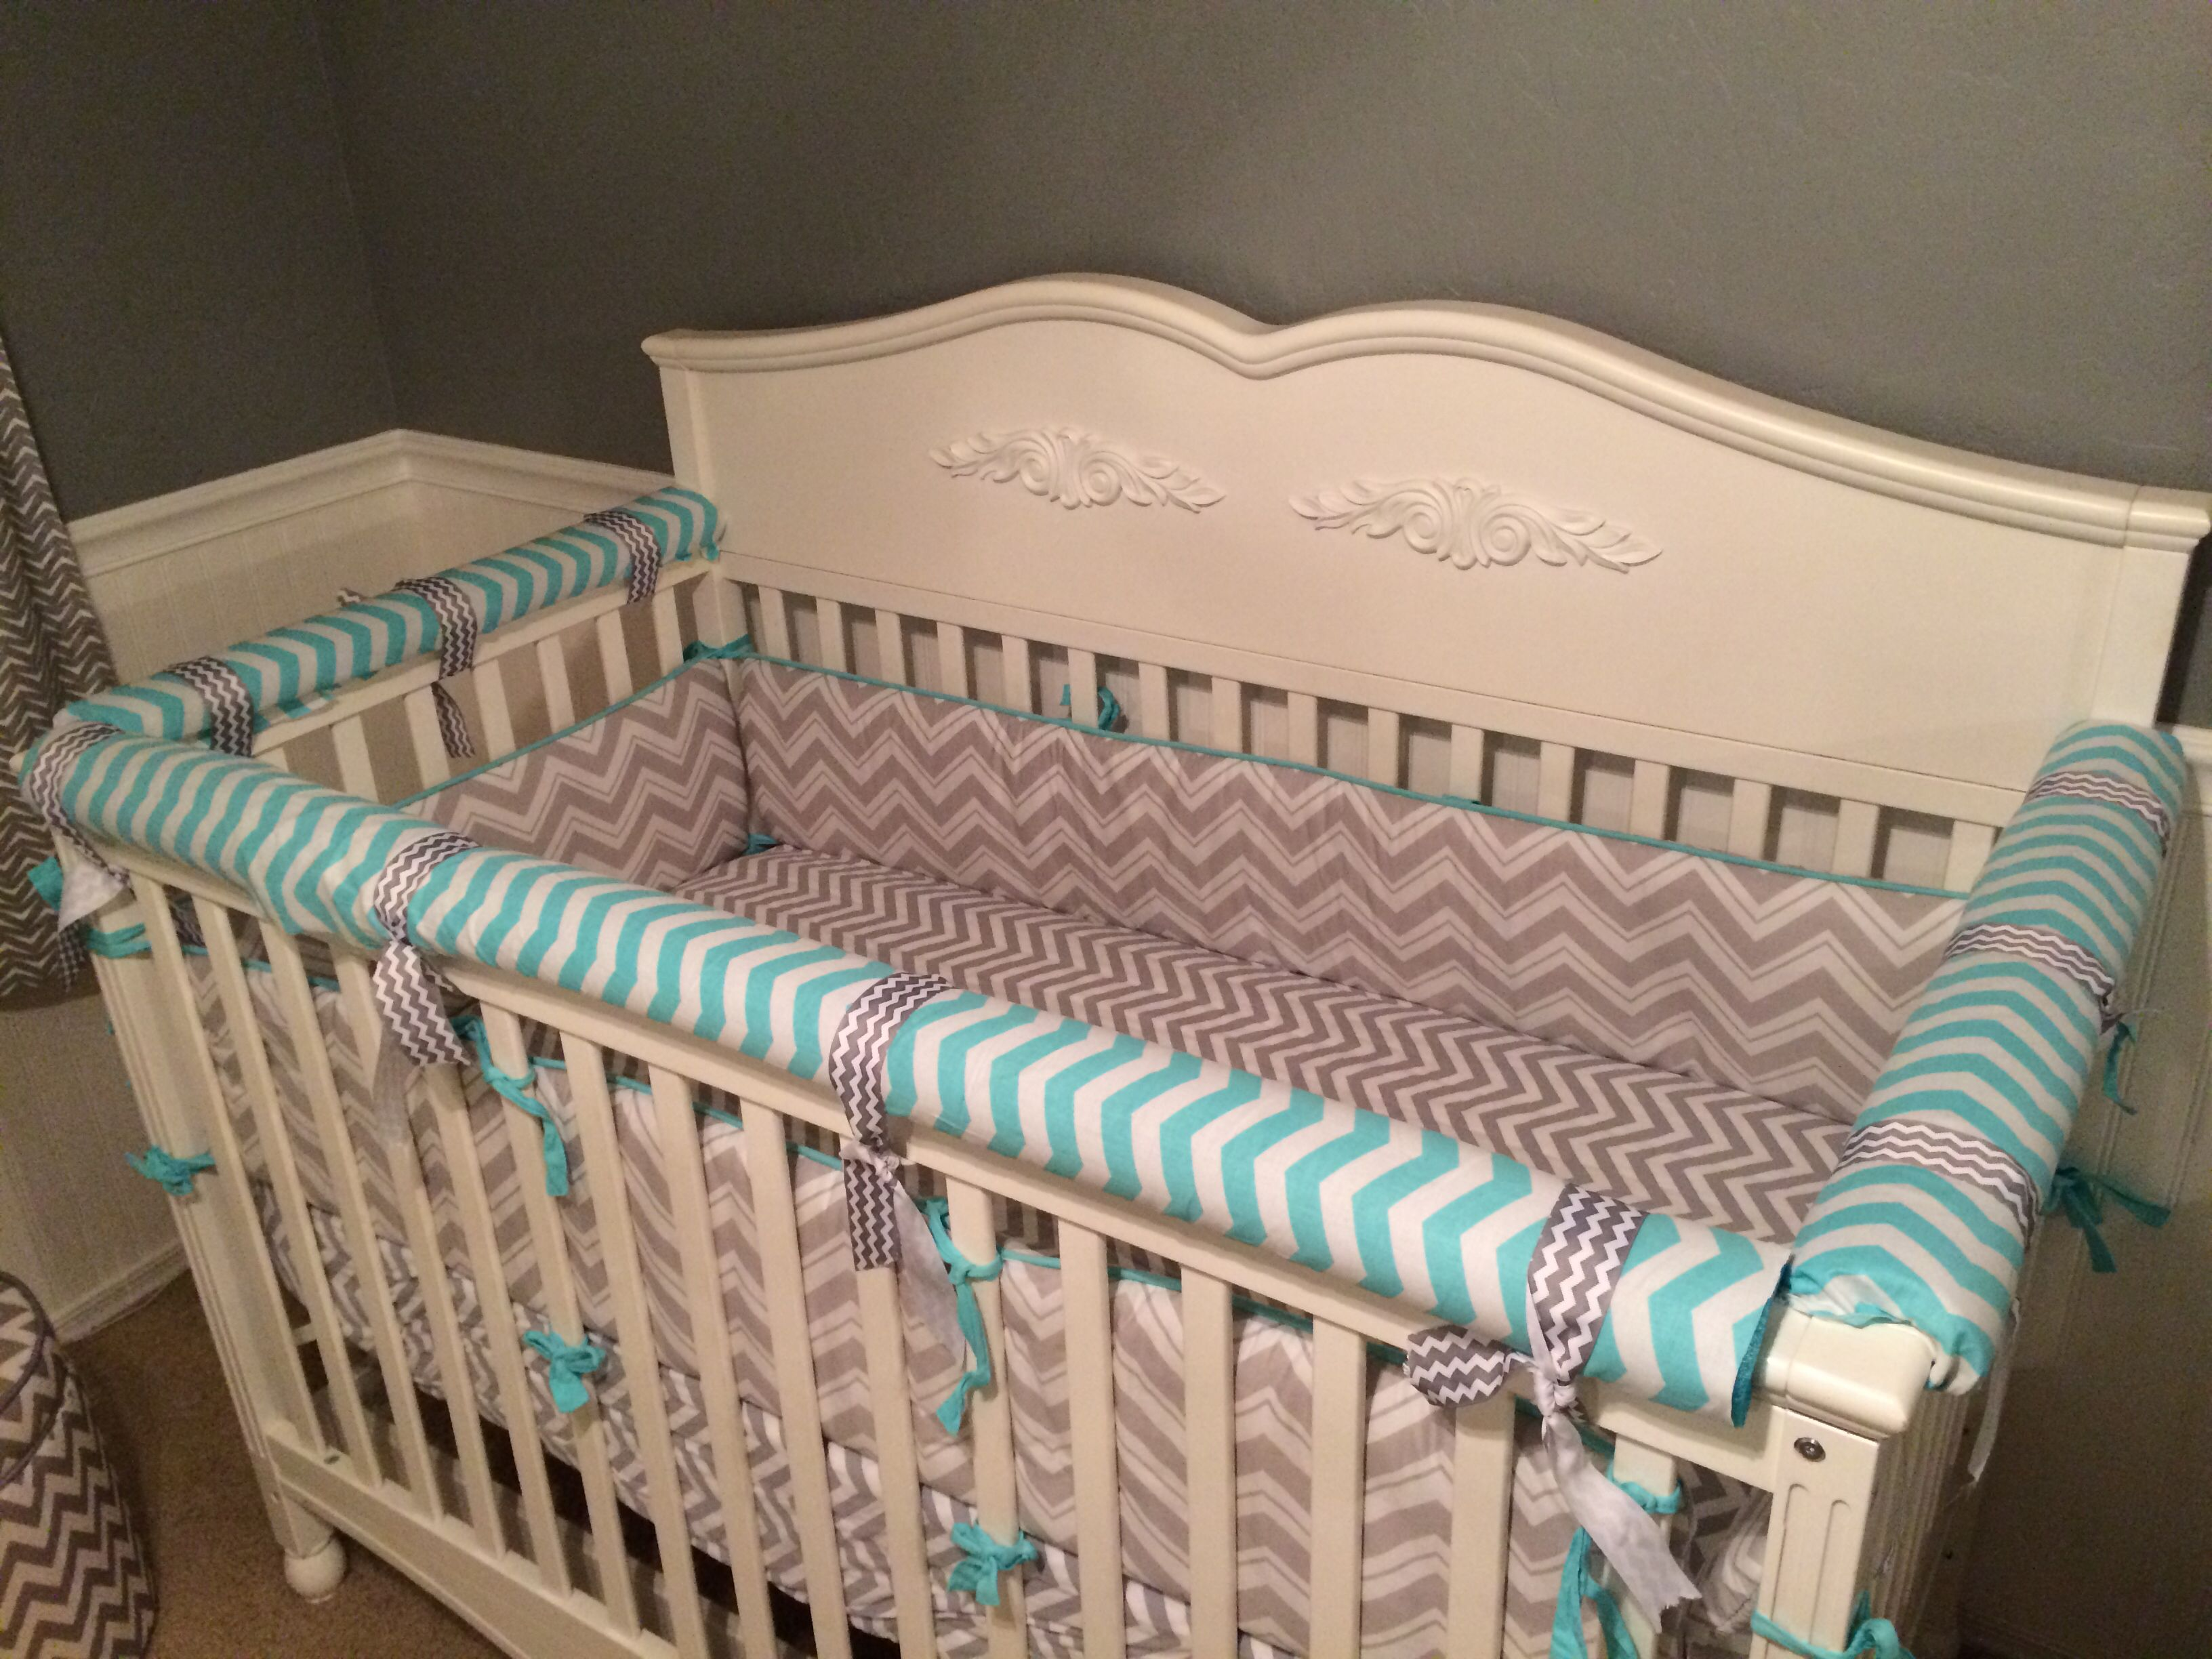 Baby crib zipper sheets - Diy Crib Teething Guard Rail Materials Used Pool Noodle Zip Ties Fabric And